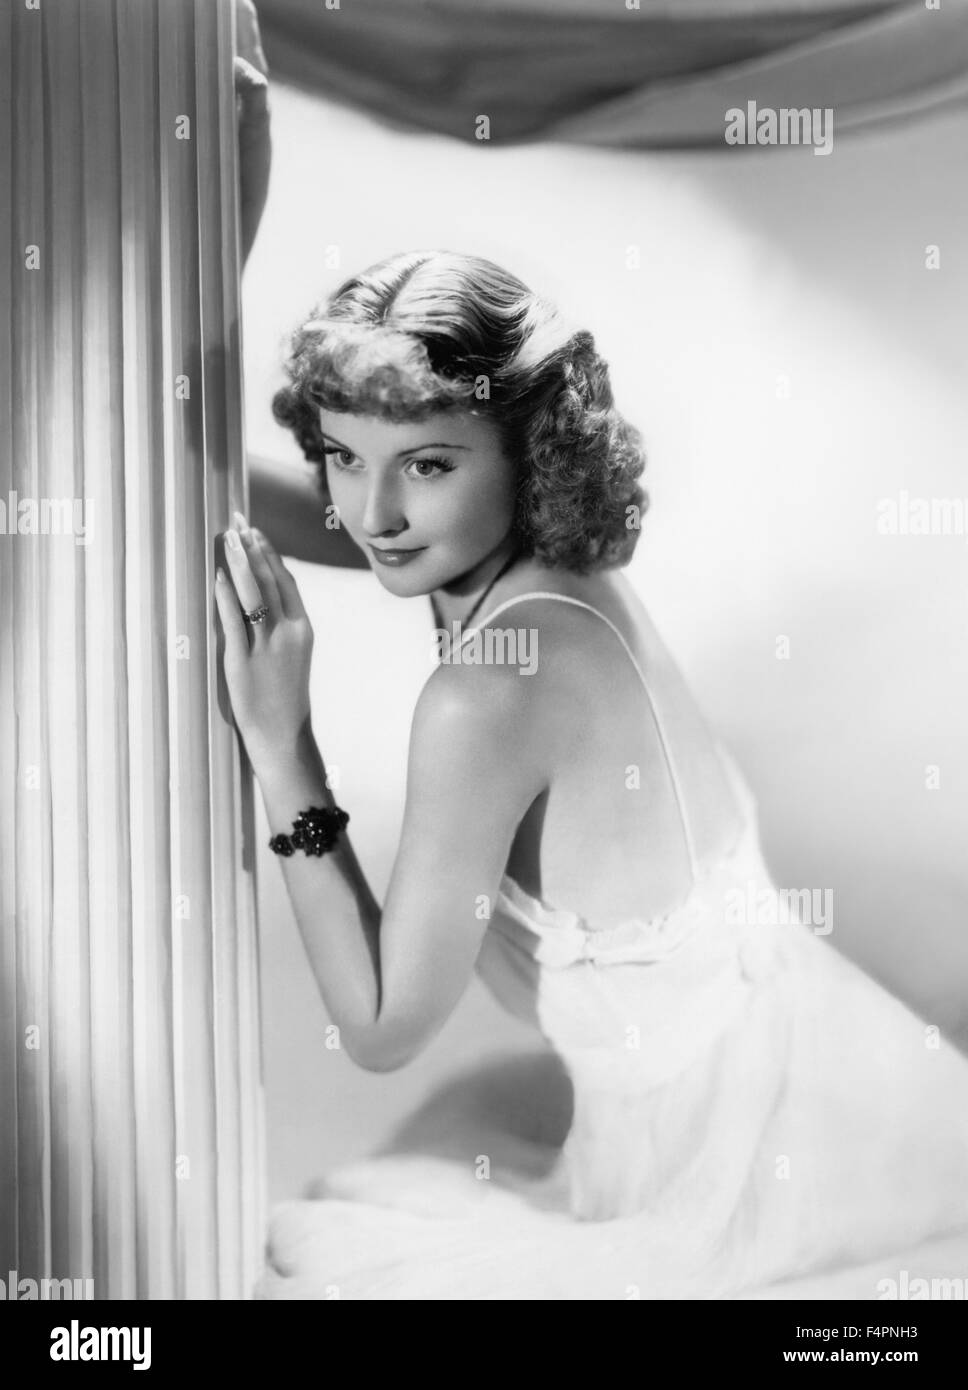 Barbara Stanwyck dans les années 30 Photo Stock